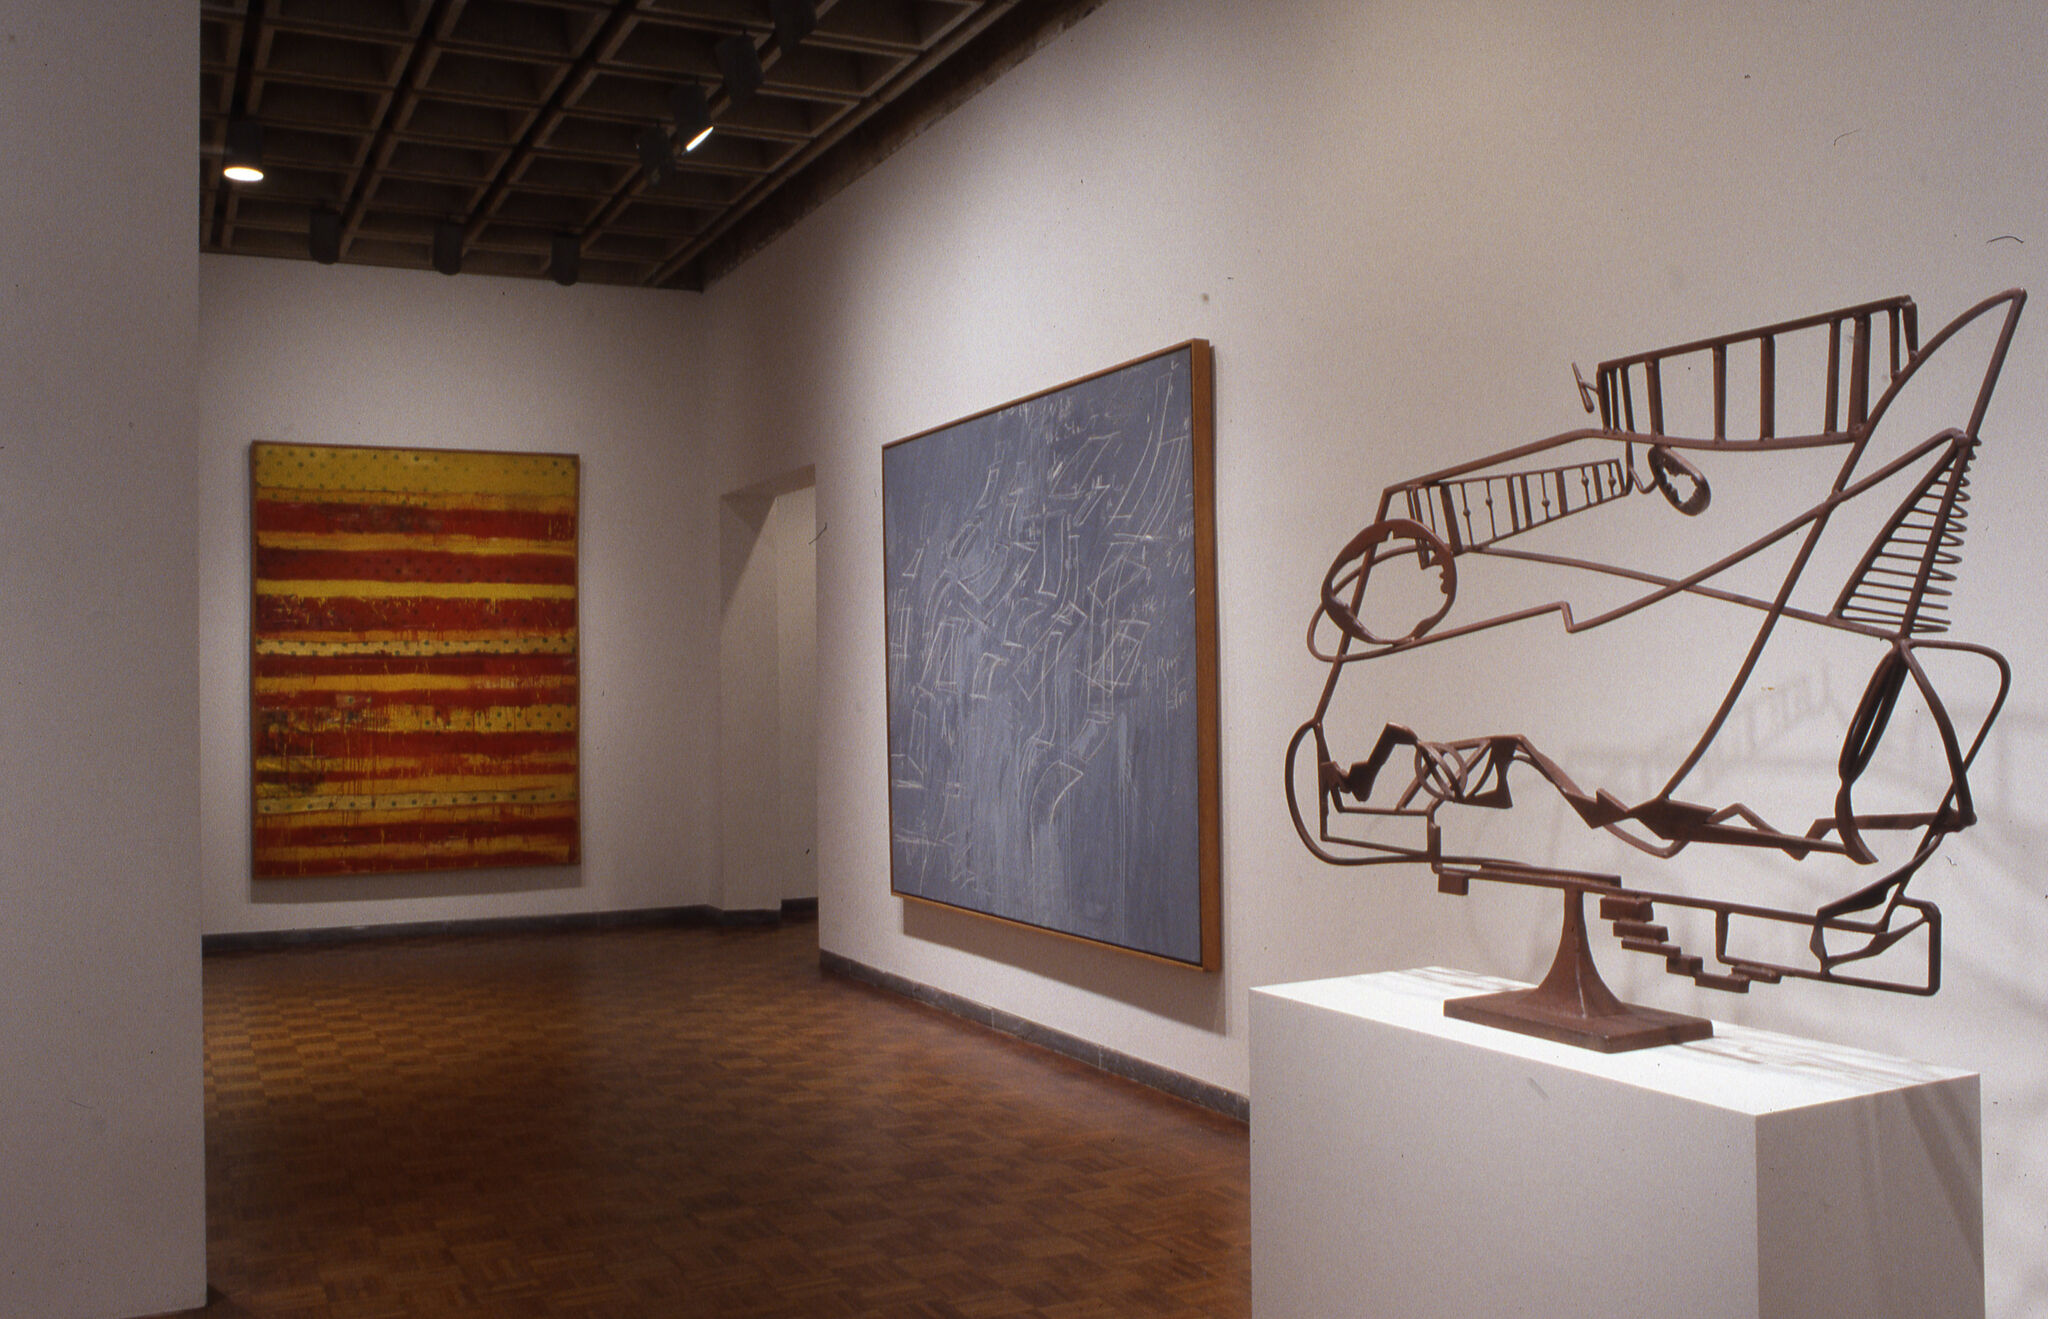 A wire sculpture and two paintings displayed in a gallery.